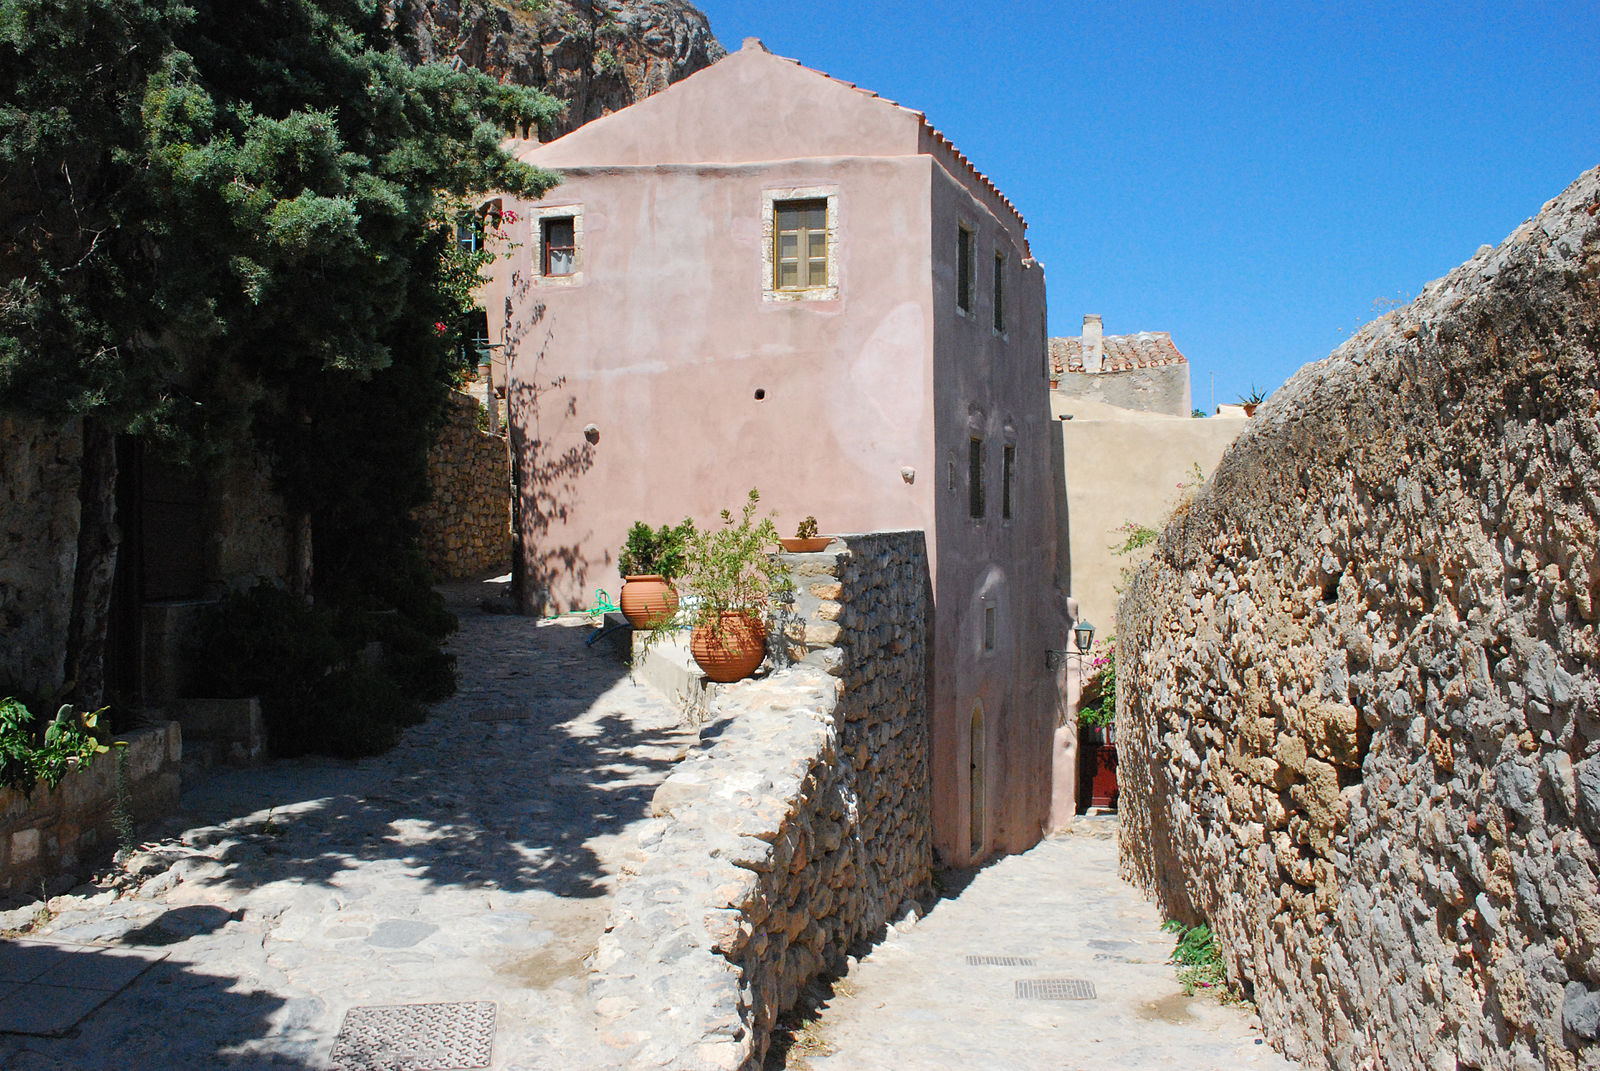 Monemvasia, Greece - Greek Peloponnese round tour in 15 days. Visit all main attraction of Peloponnese peninsula and see castles, ancient places, beaches. This is Peloponnese where located Sparta, Corinth, Mycenae, Epidaurus, Monemvasia.